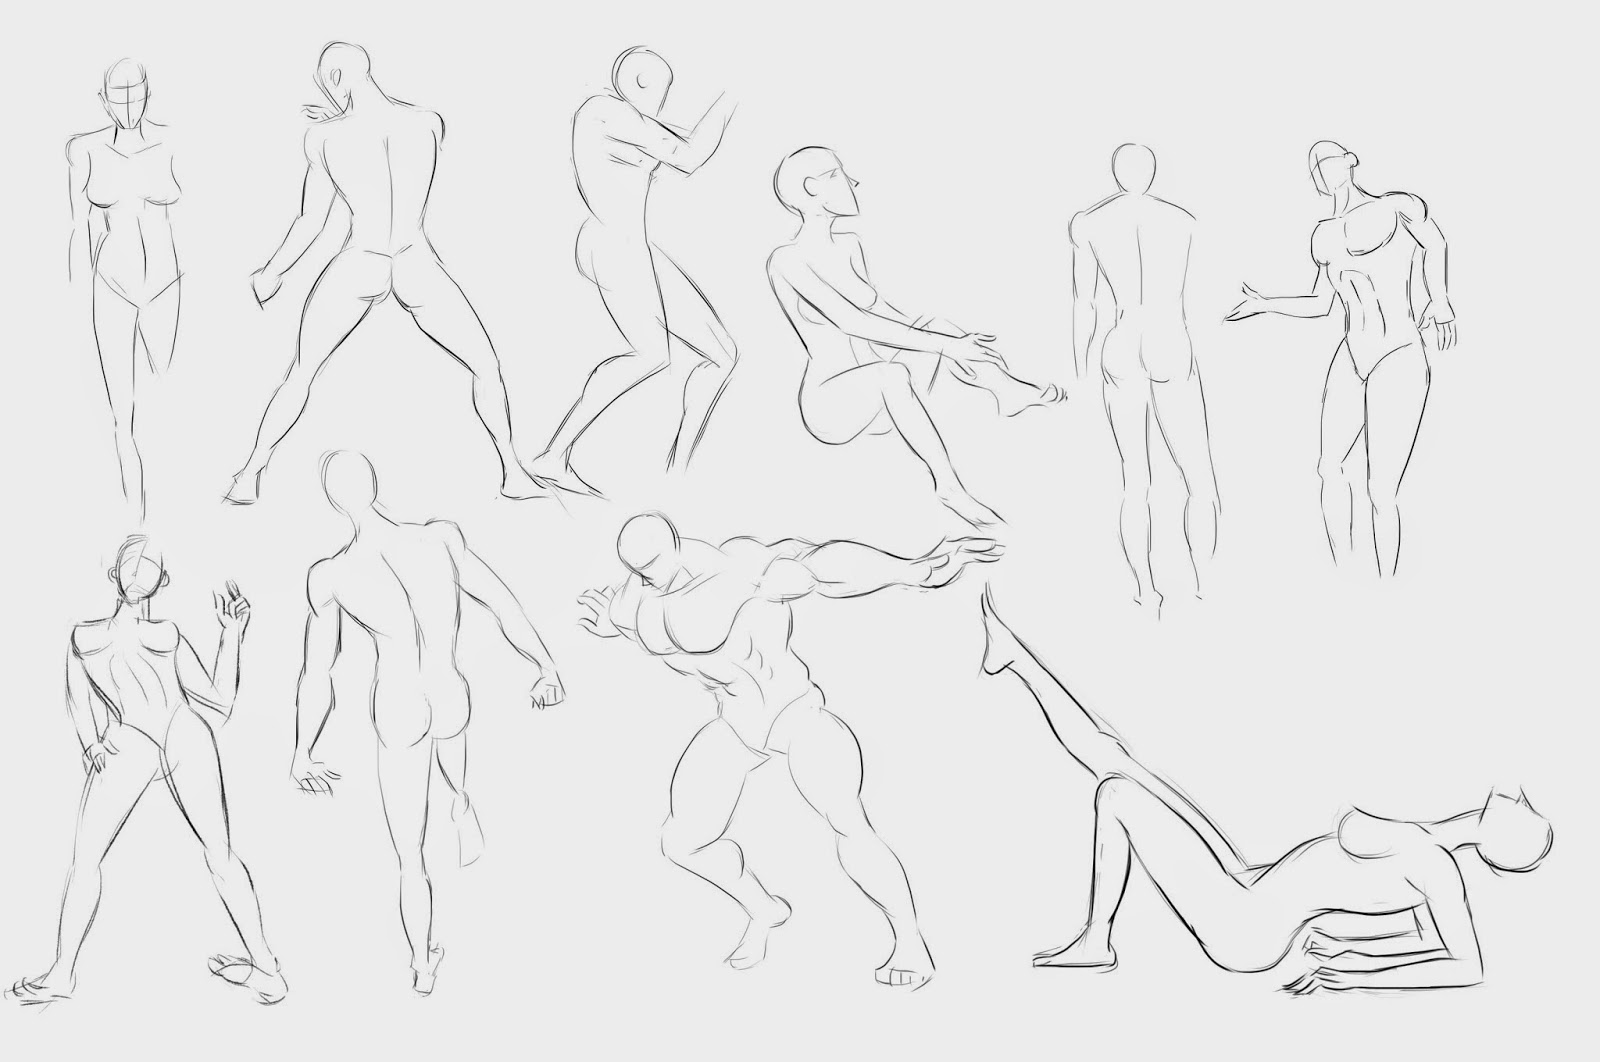 Artmarvs Illustrations Random Human Anatomy Sketch Study